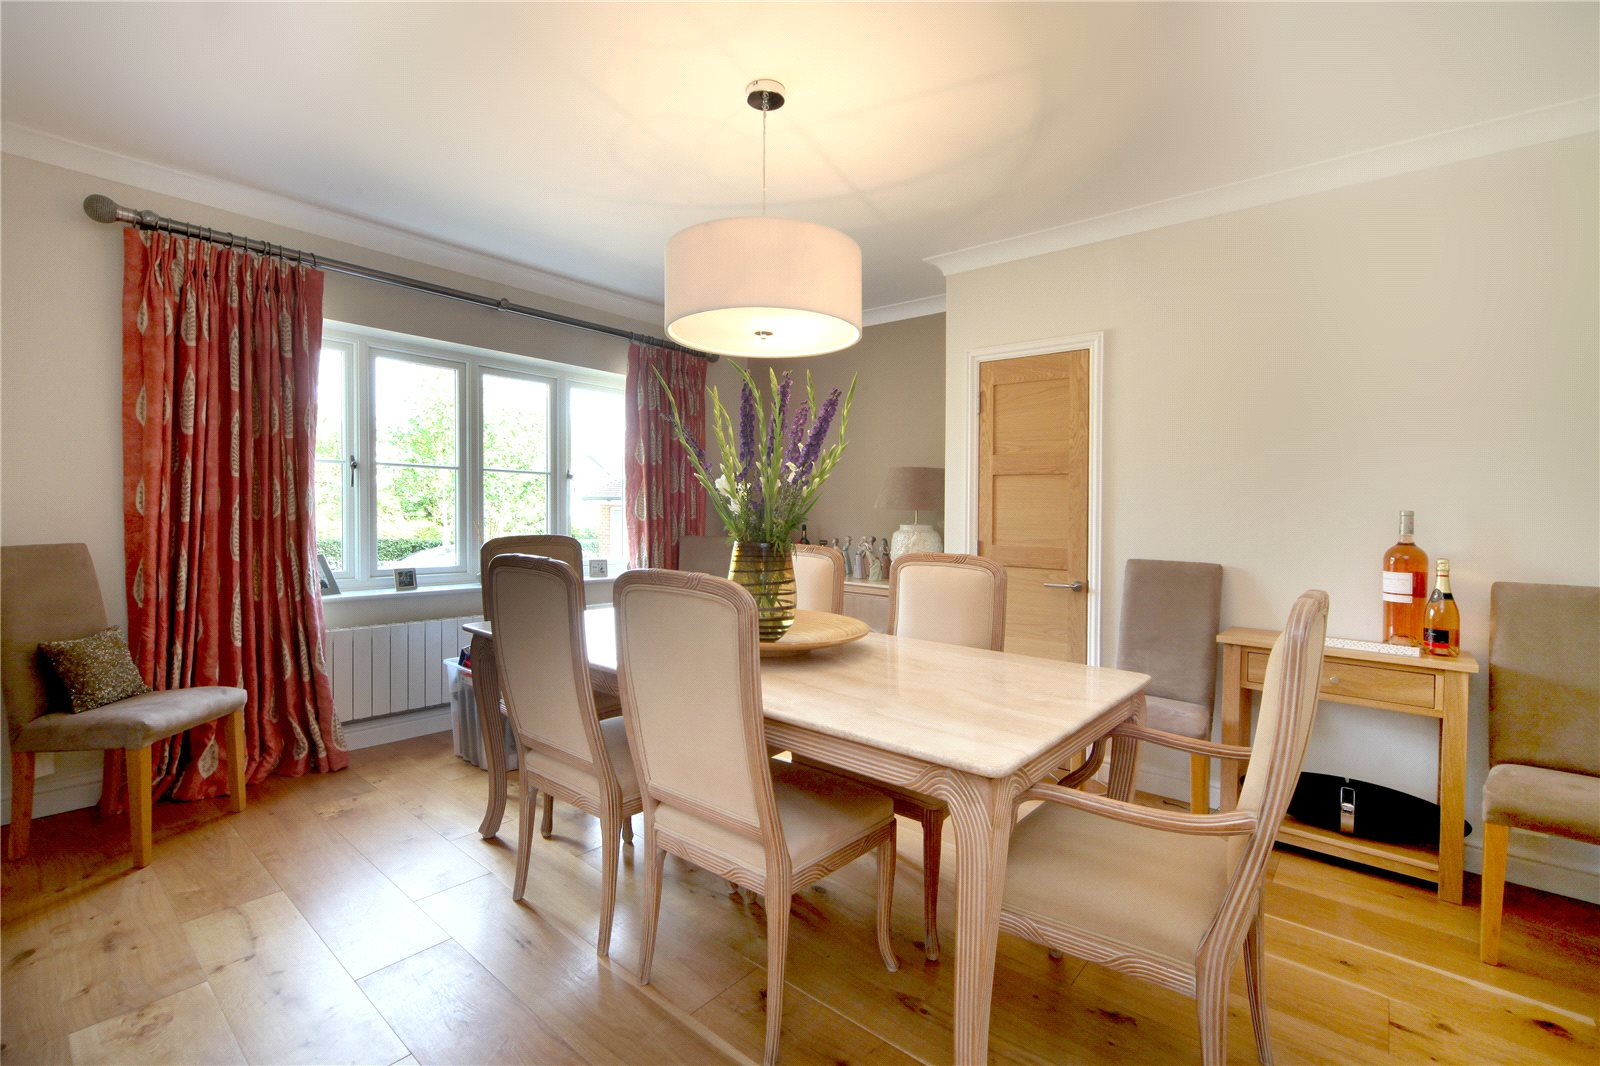 Additional photo for property listing at Priory Road, Sunningdale, Berkshire, SL5 Sunningdale, イギリス